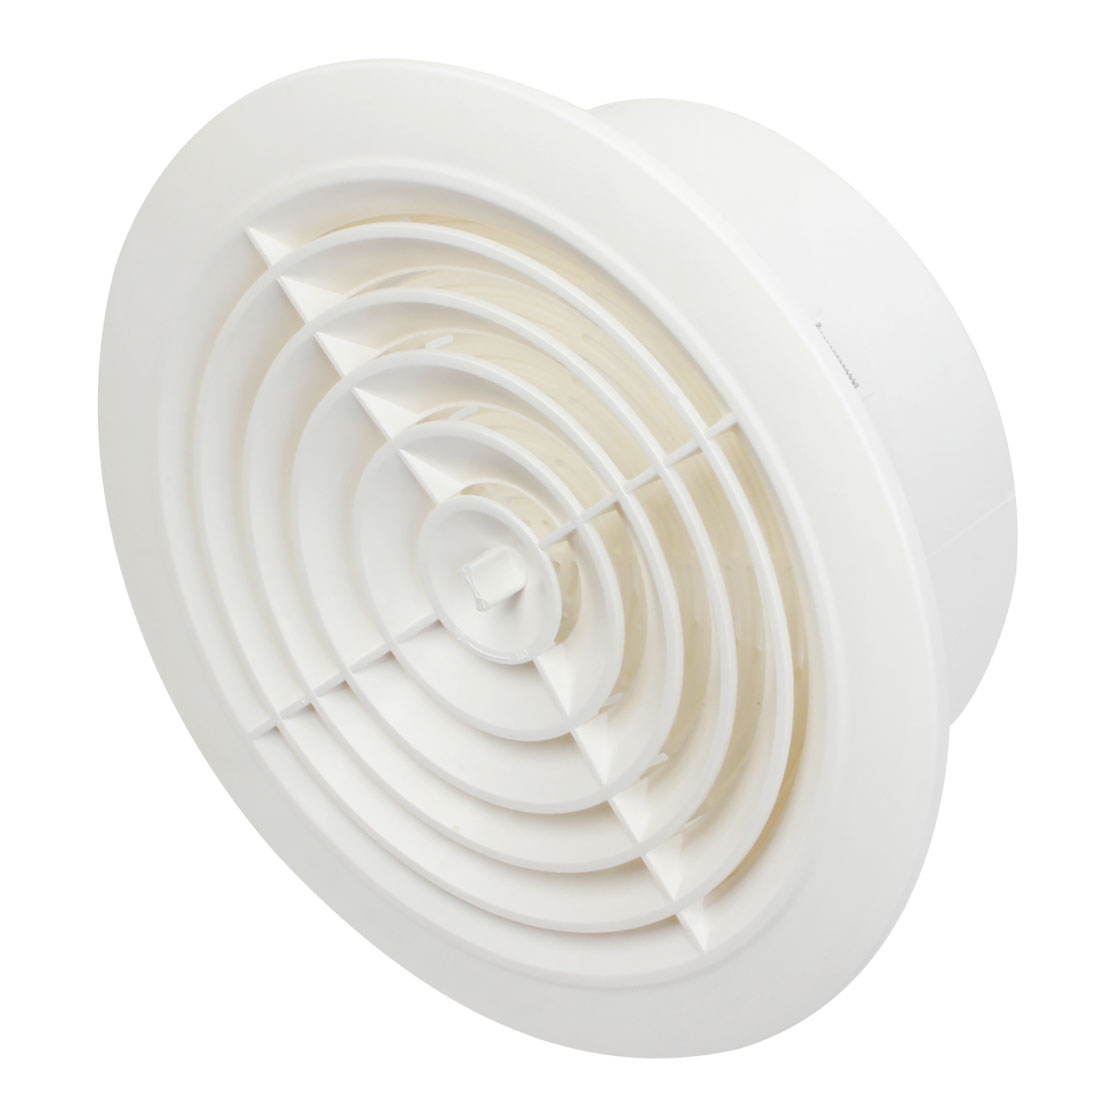 200mm Mounting Dia Adjustable Circle Air Vent Grill Outlet Ventilation Cover Flange White